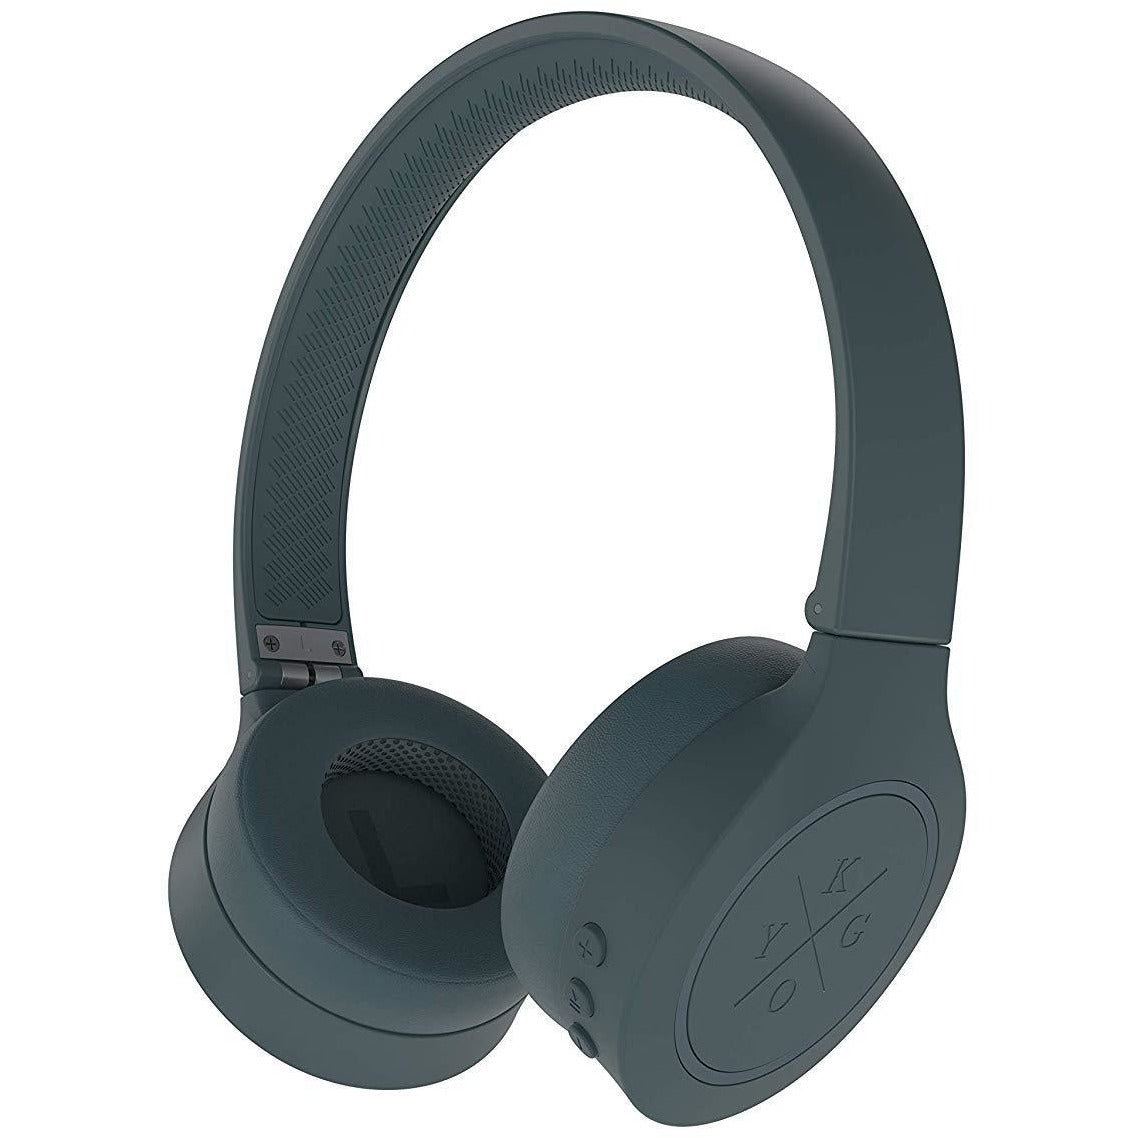 Kygo A4/300 Wireless Bluetooth 4.2 On Ear Headphones - Storm Grey [Accessories]